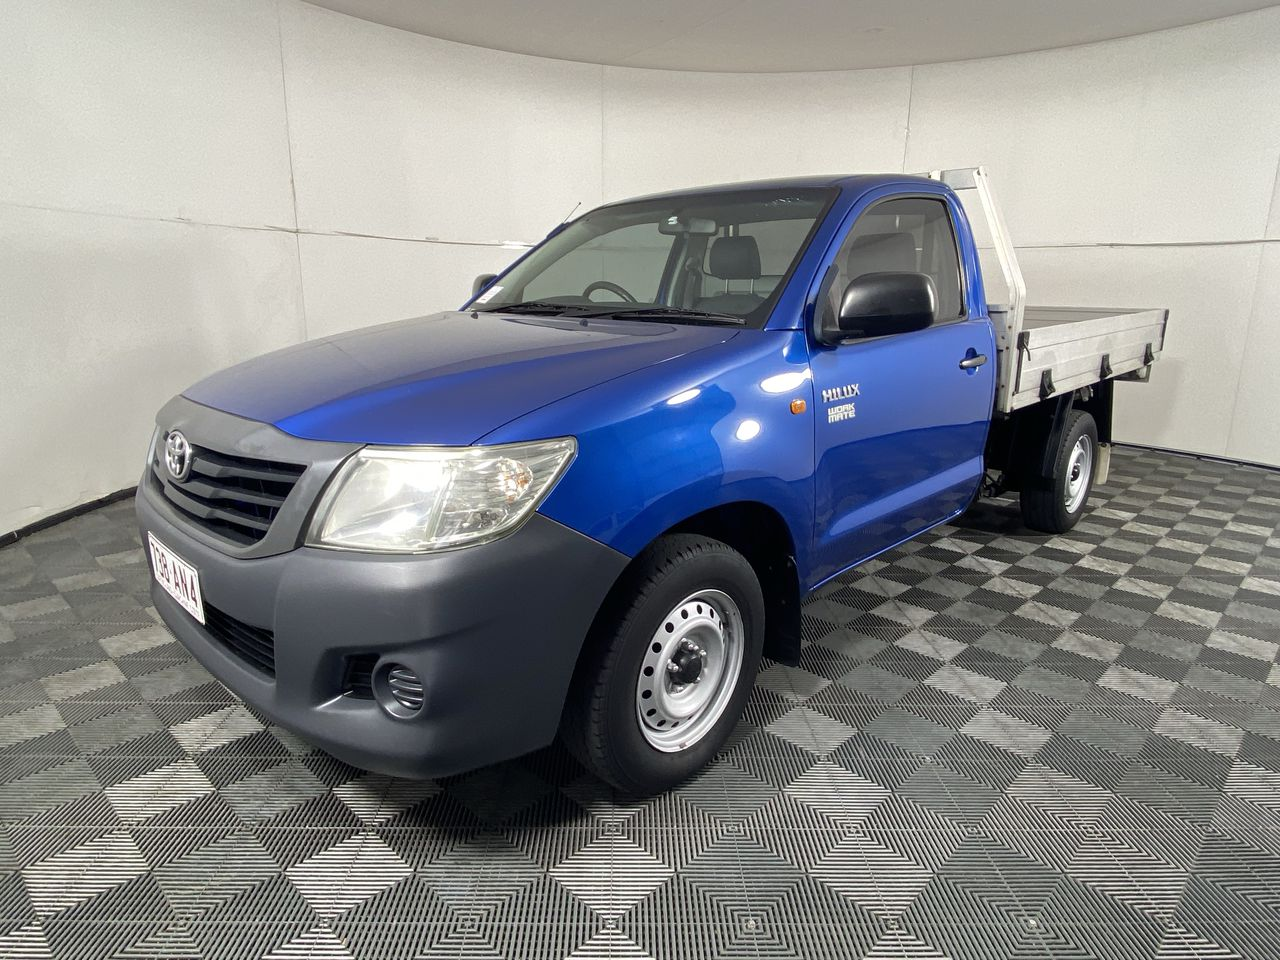 2011 Toyota Hilux Workmate Update TGN16R Manual Cab Chassis 106,292 km's